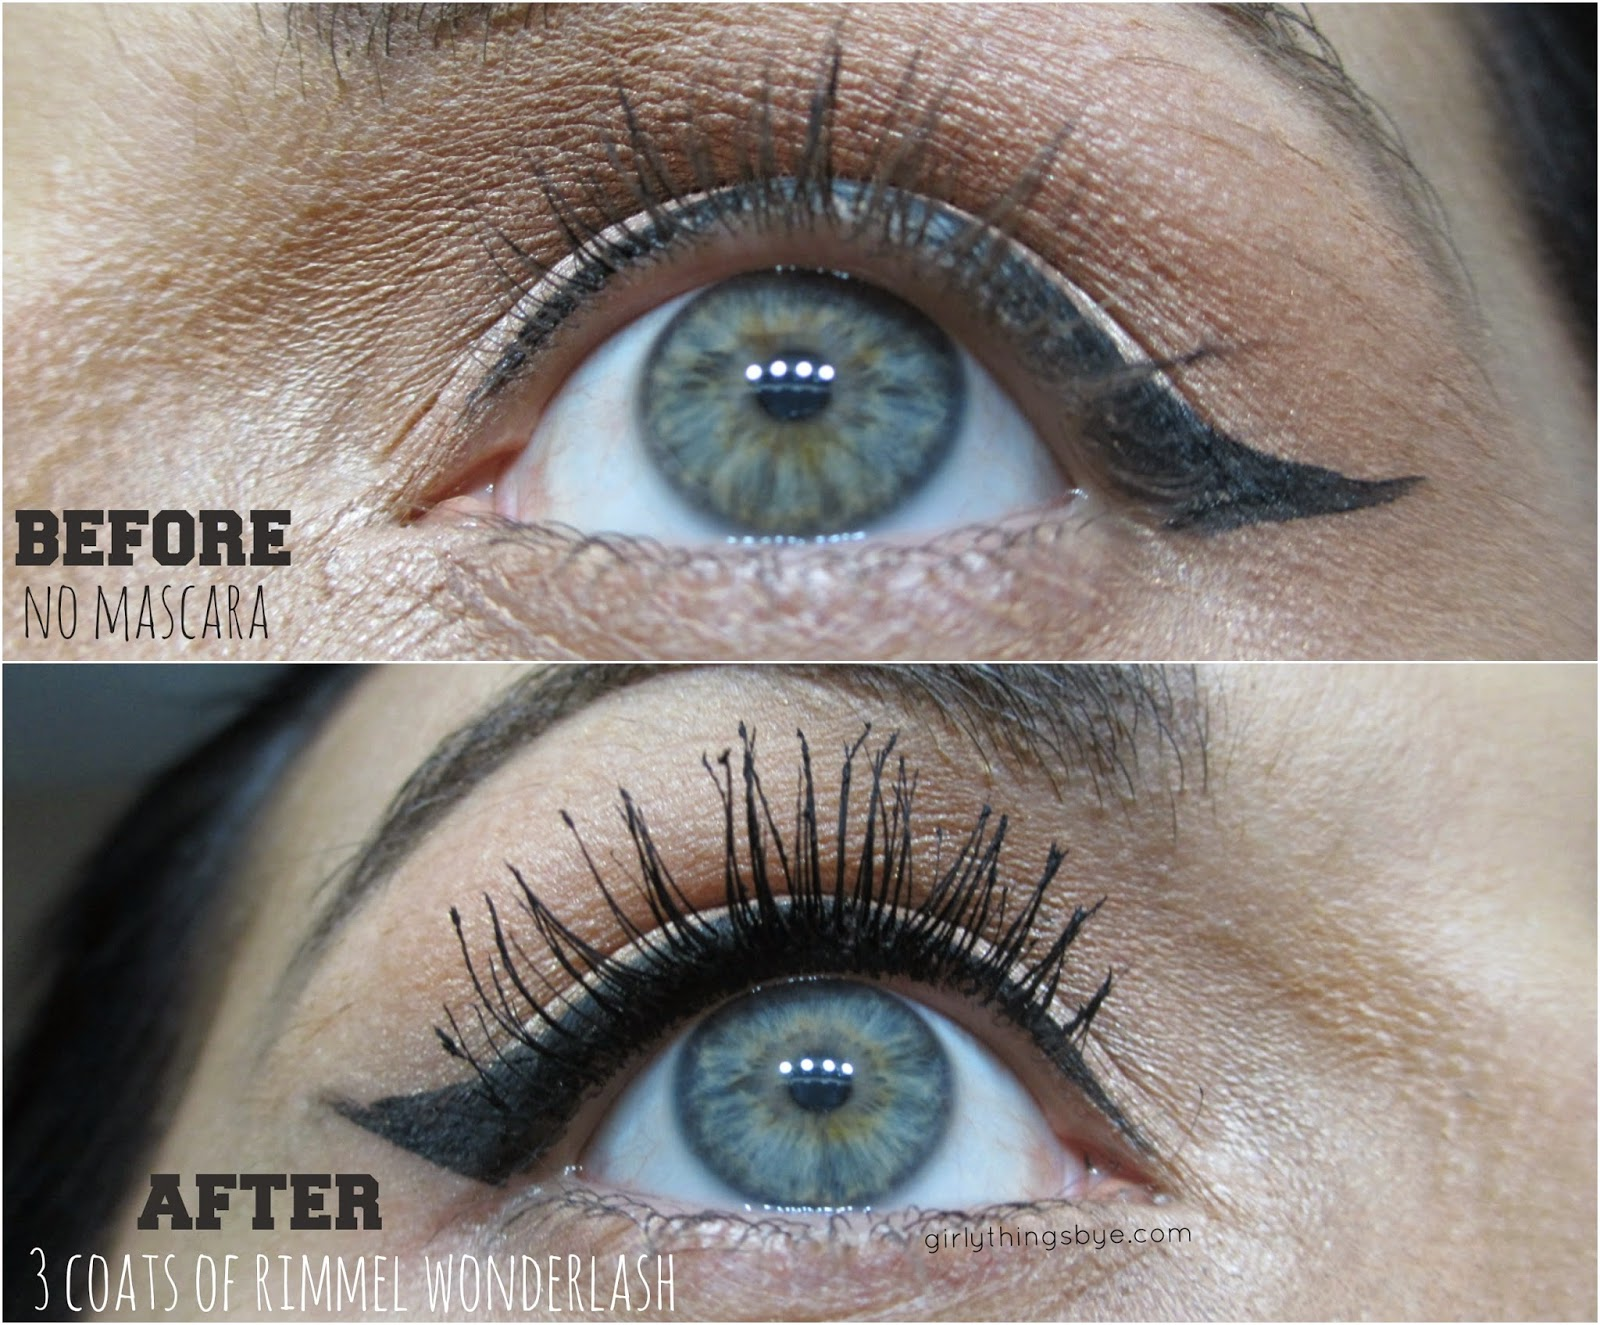 59e03069209 Rimmel Wonder'Lash Mascara with Argan Oil before and after photo